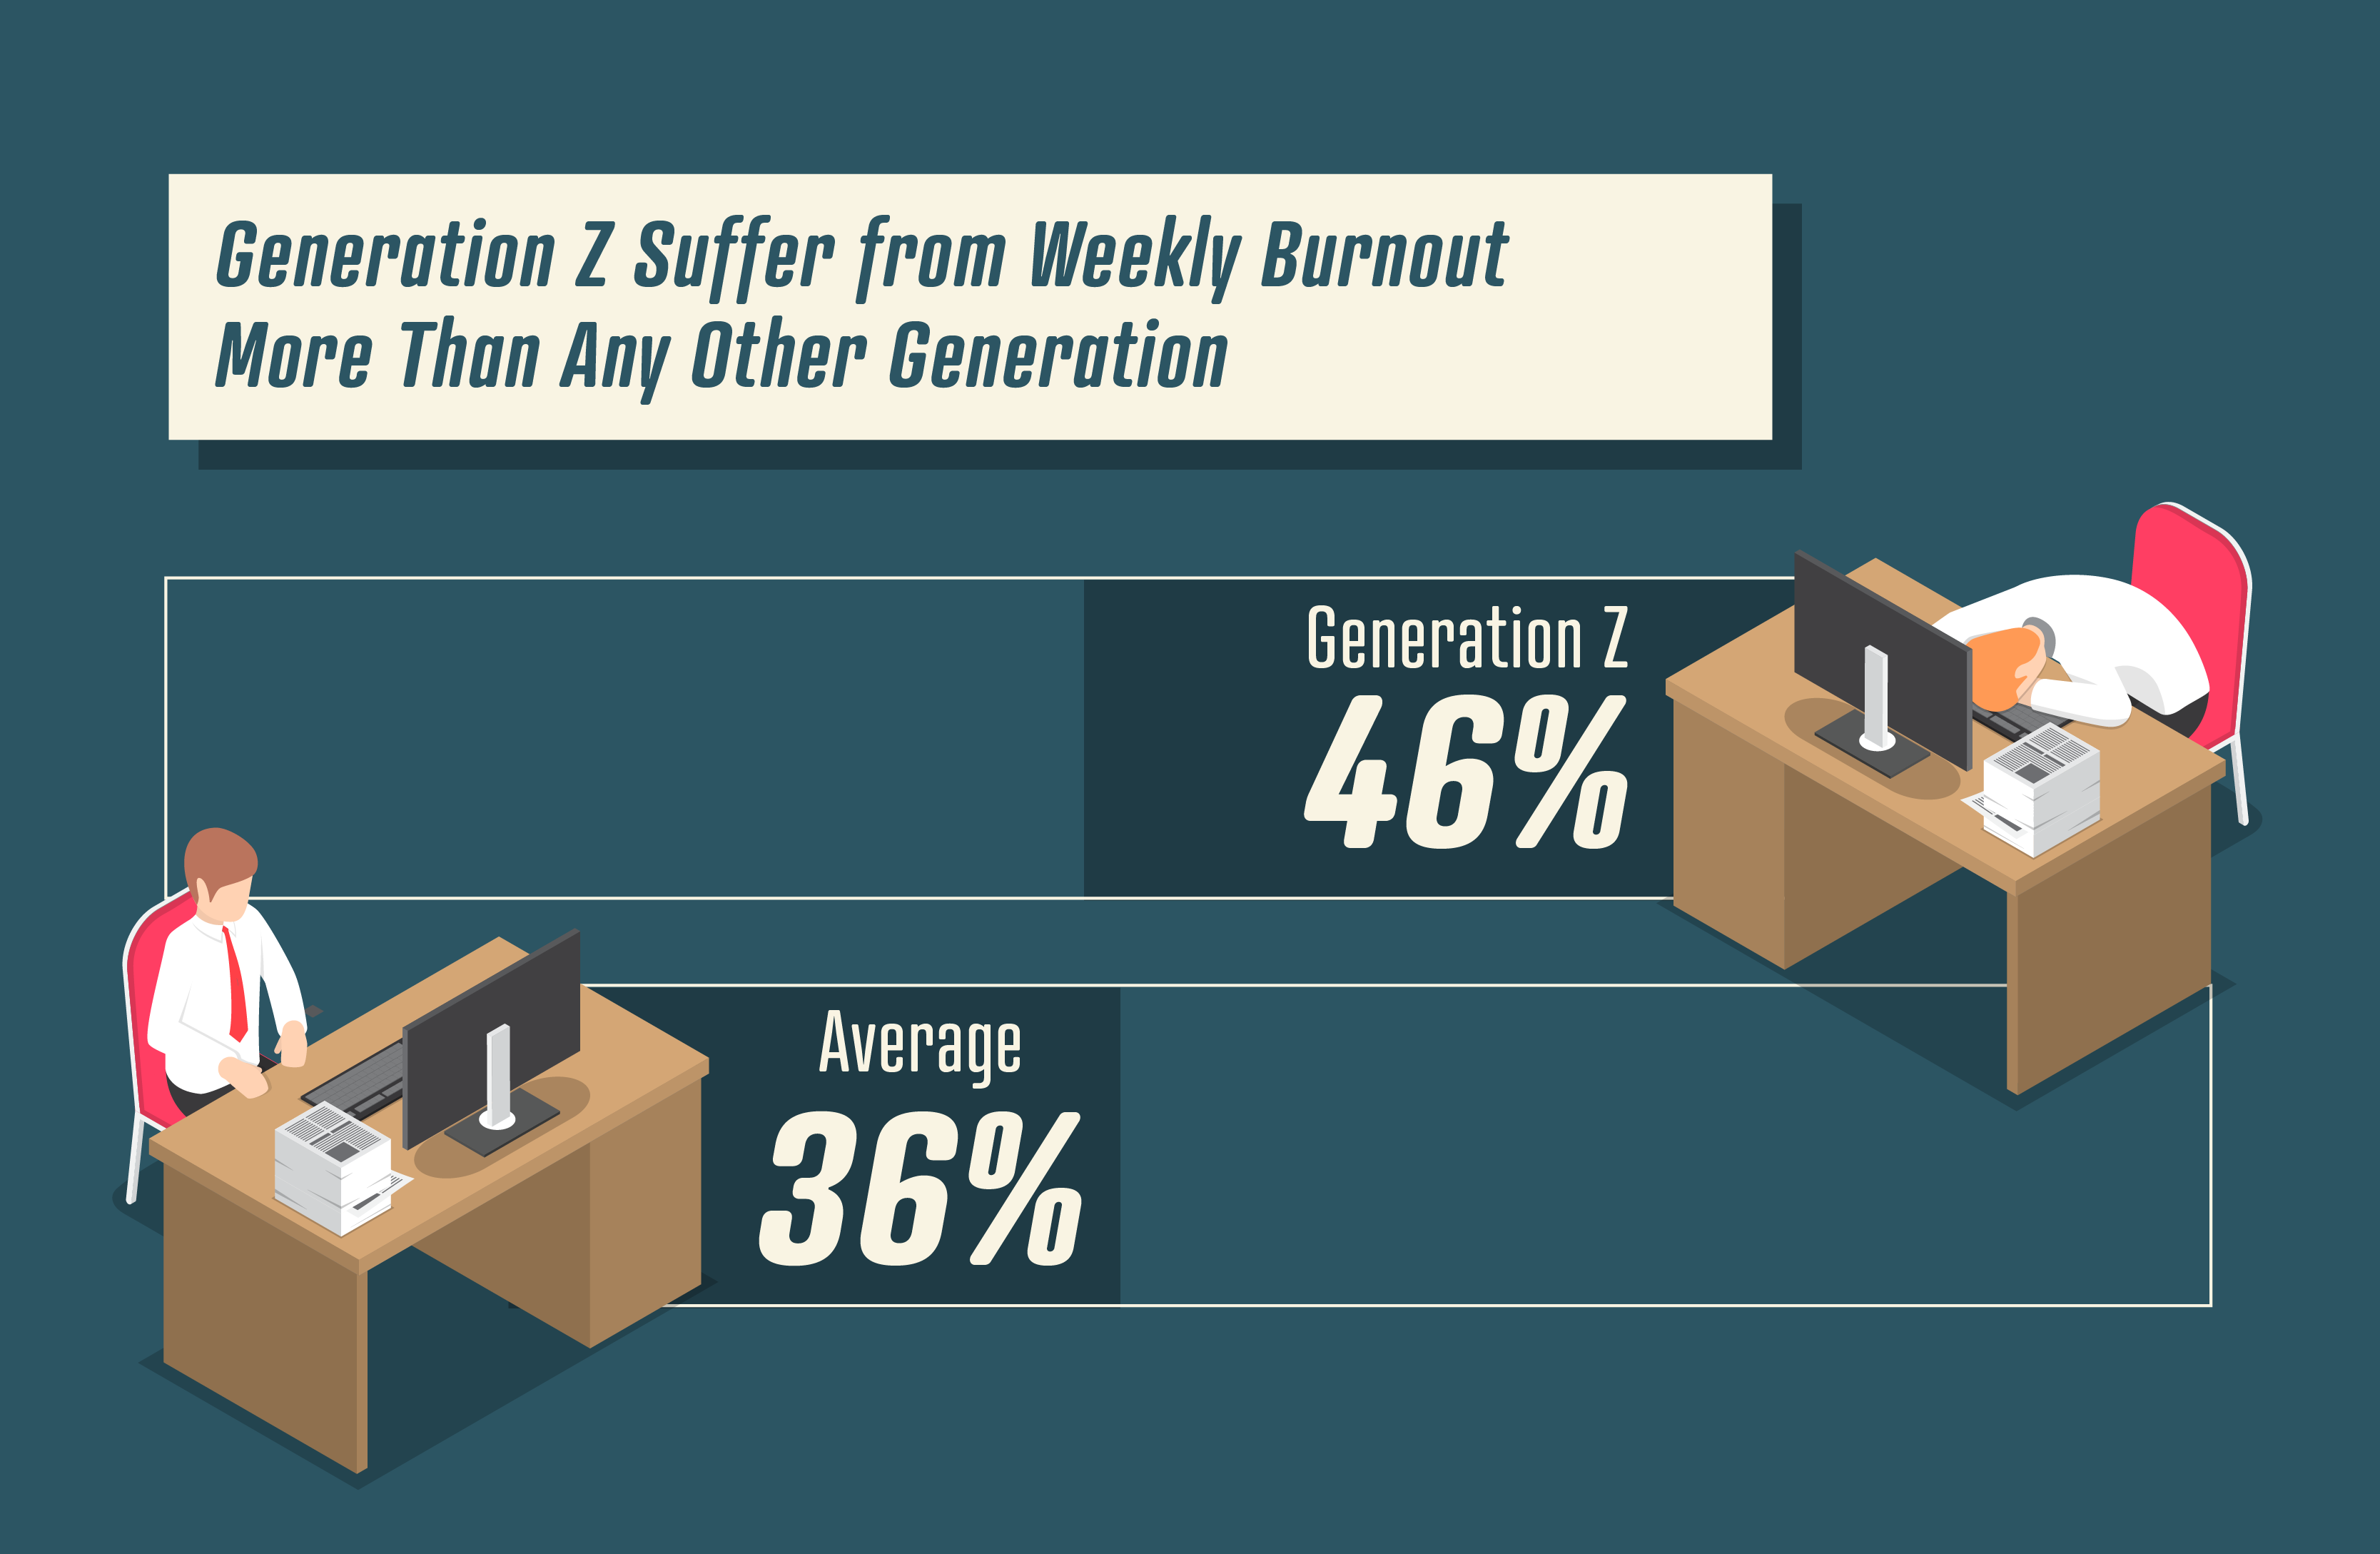 Whitepaper: The Extent of Workplace Burnout in Modern America